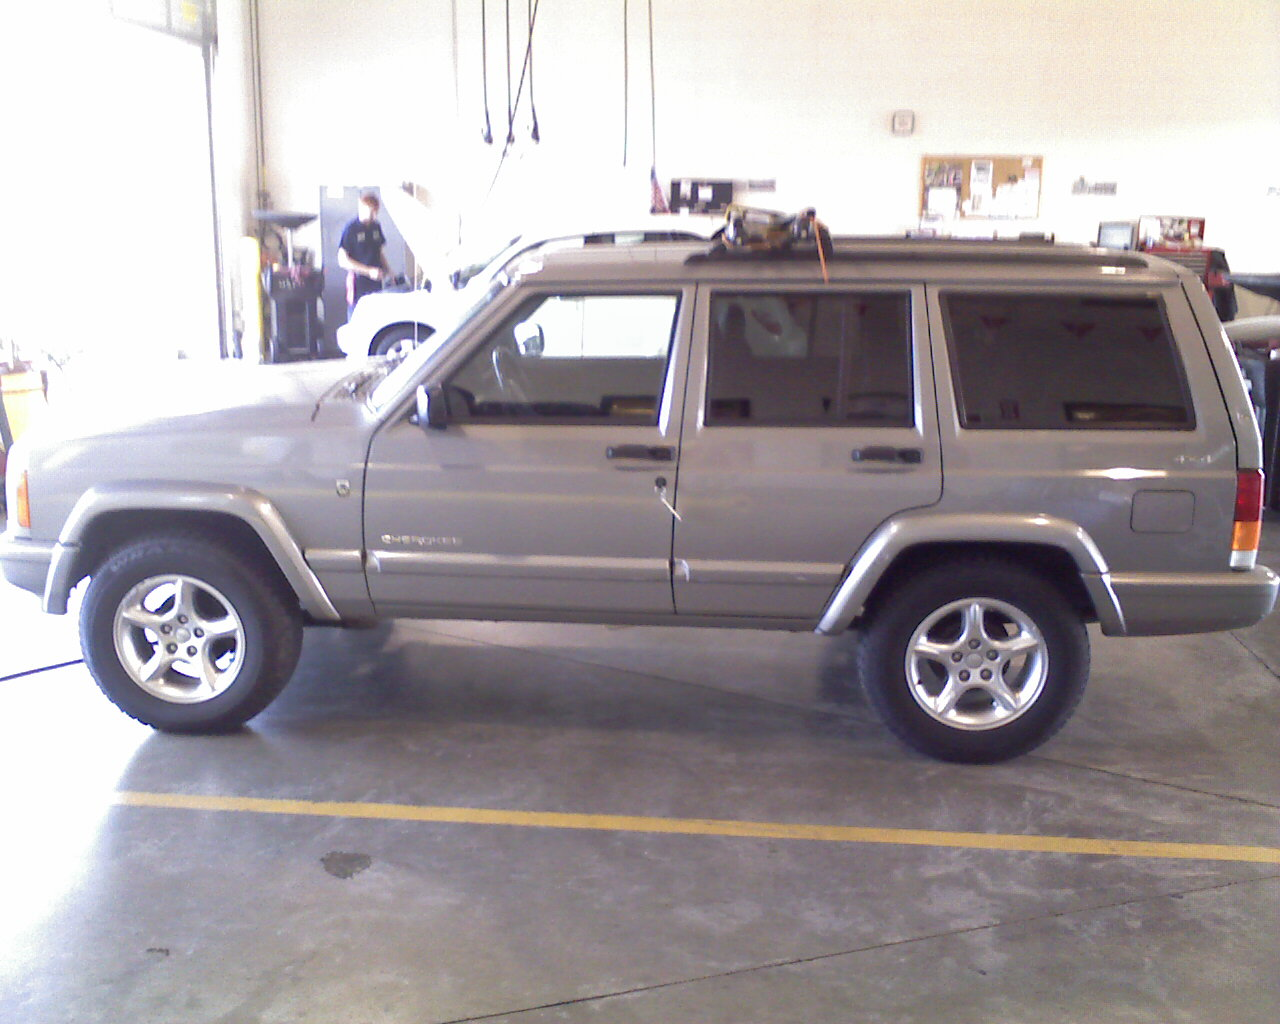 Robu0027s 2001 Jeep Cherokee, Driven Through His Garage Door Following A  Burglary On August 25th